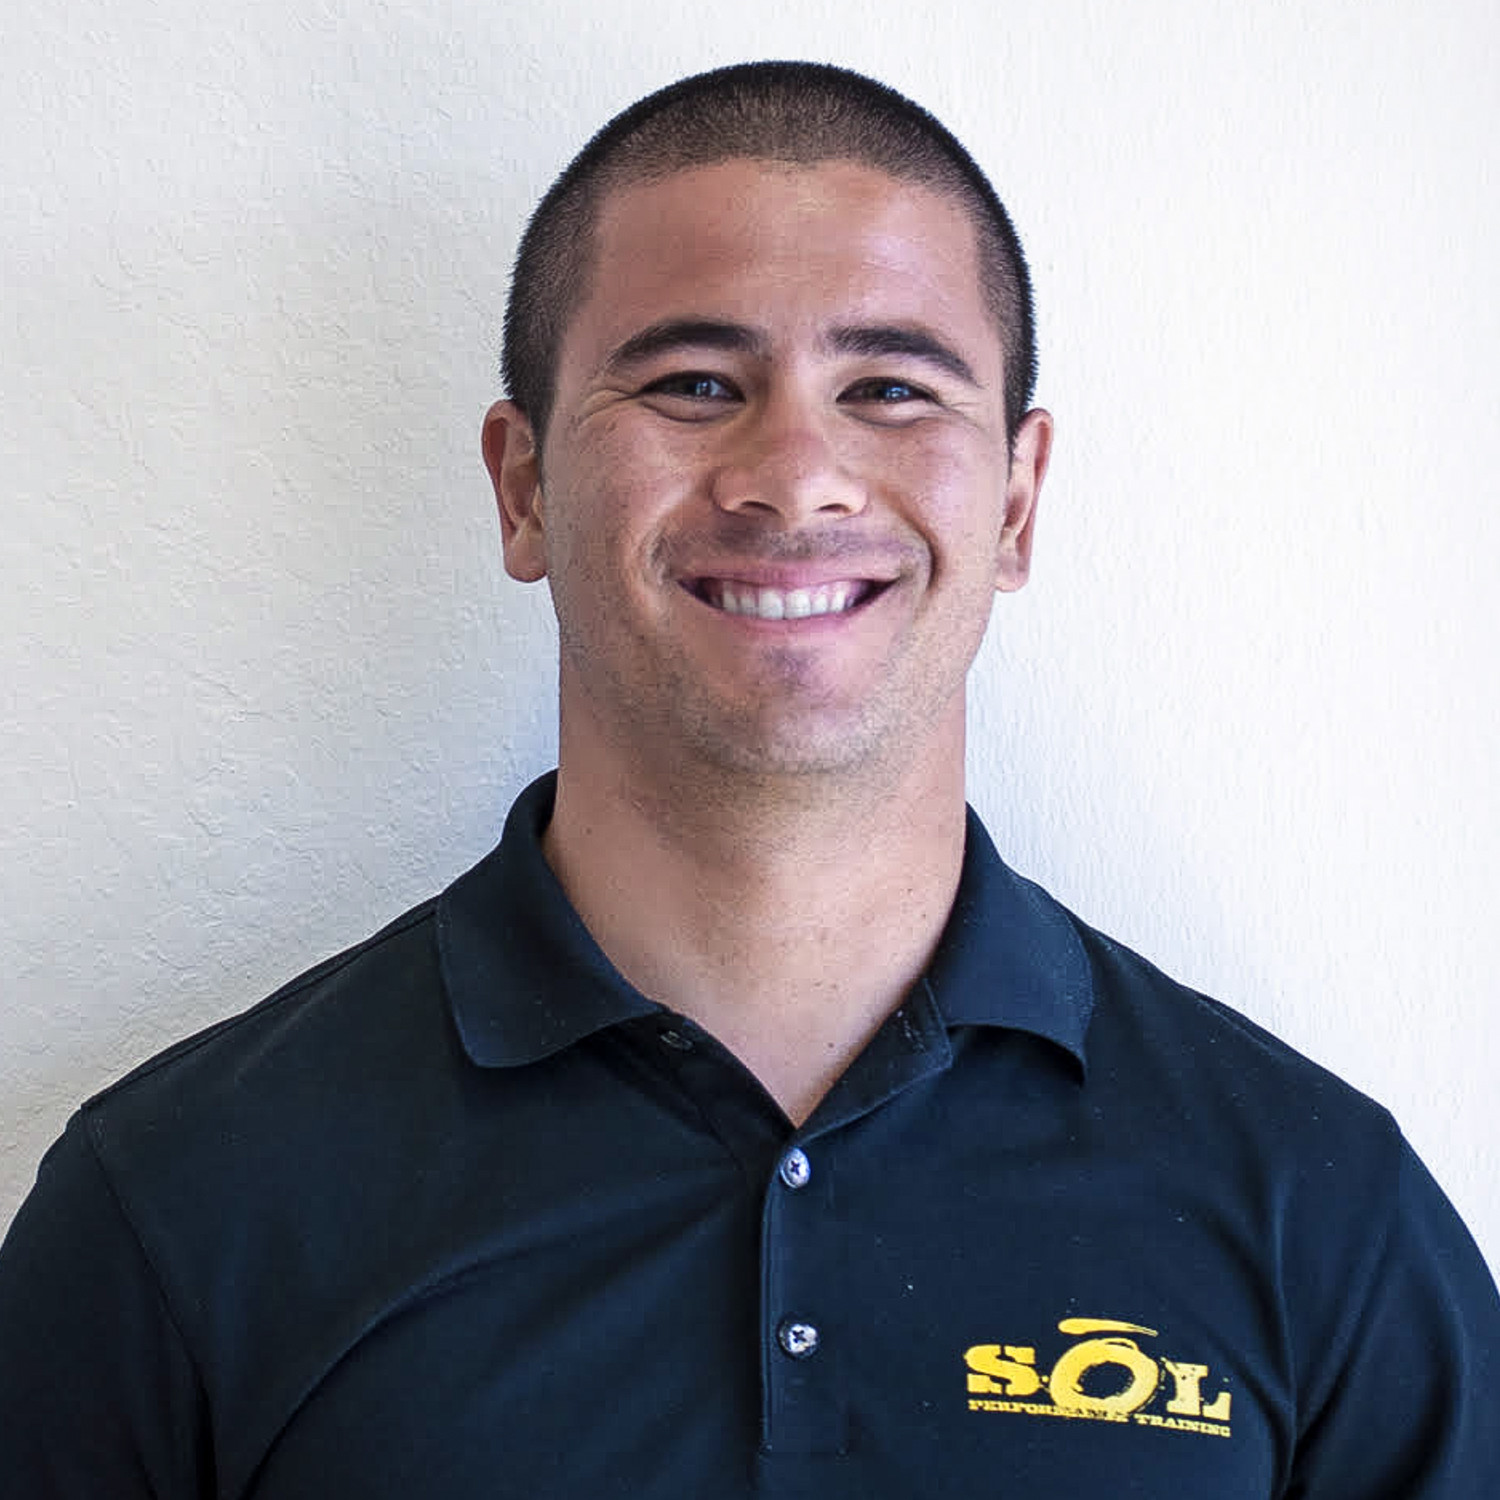 Daniel Hirai SOL Physical Therapist